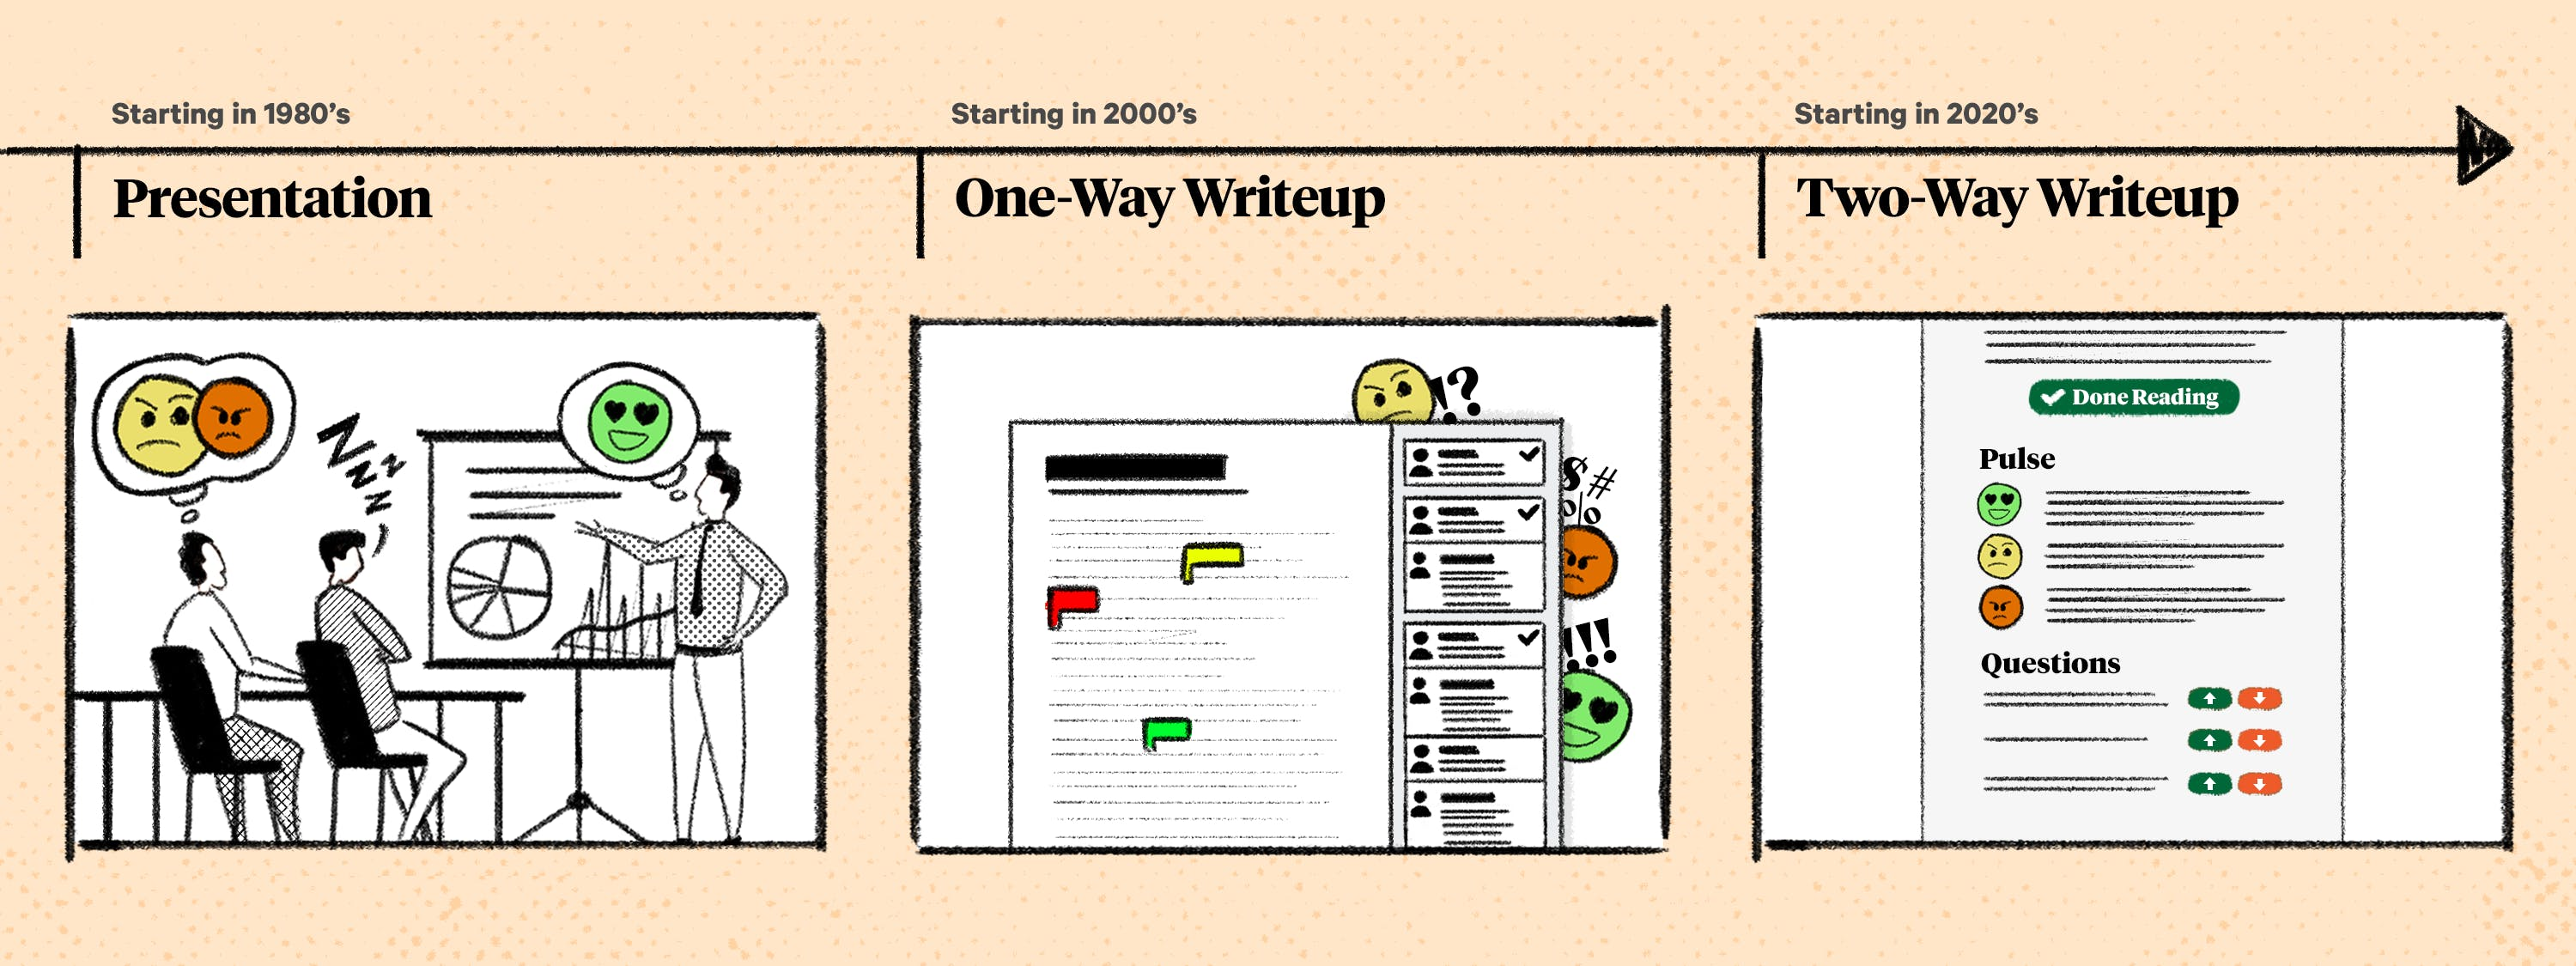 Two-Way Writeup R4 1.png